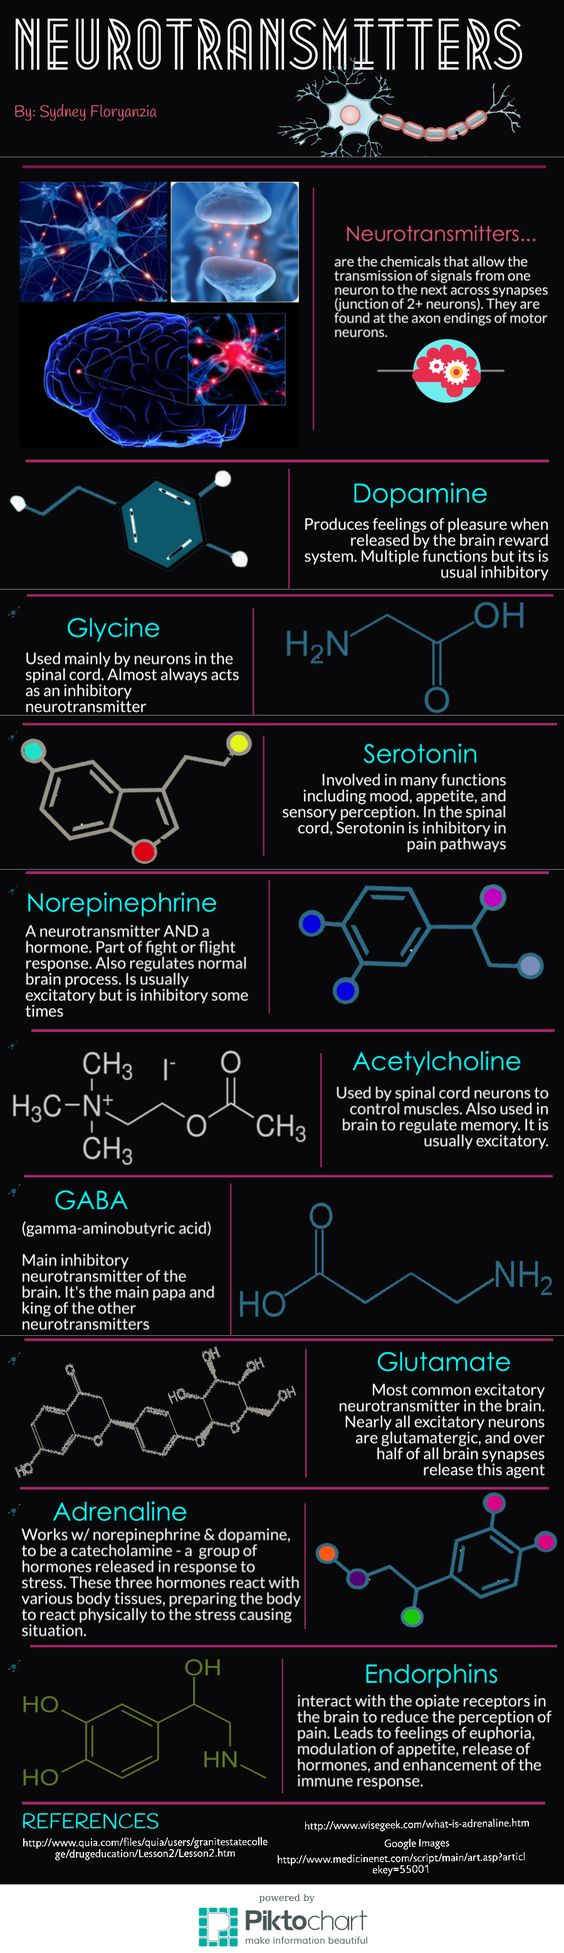 Neurotransmitters in the brain. Neuroscience. Brain chemicals - happy & sad!!.